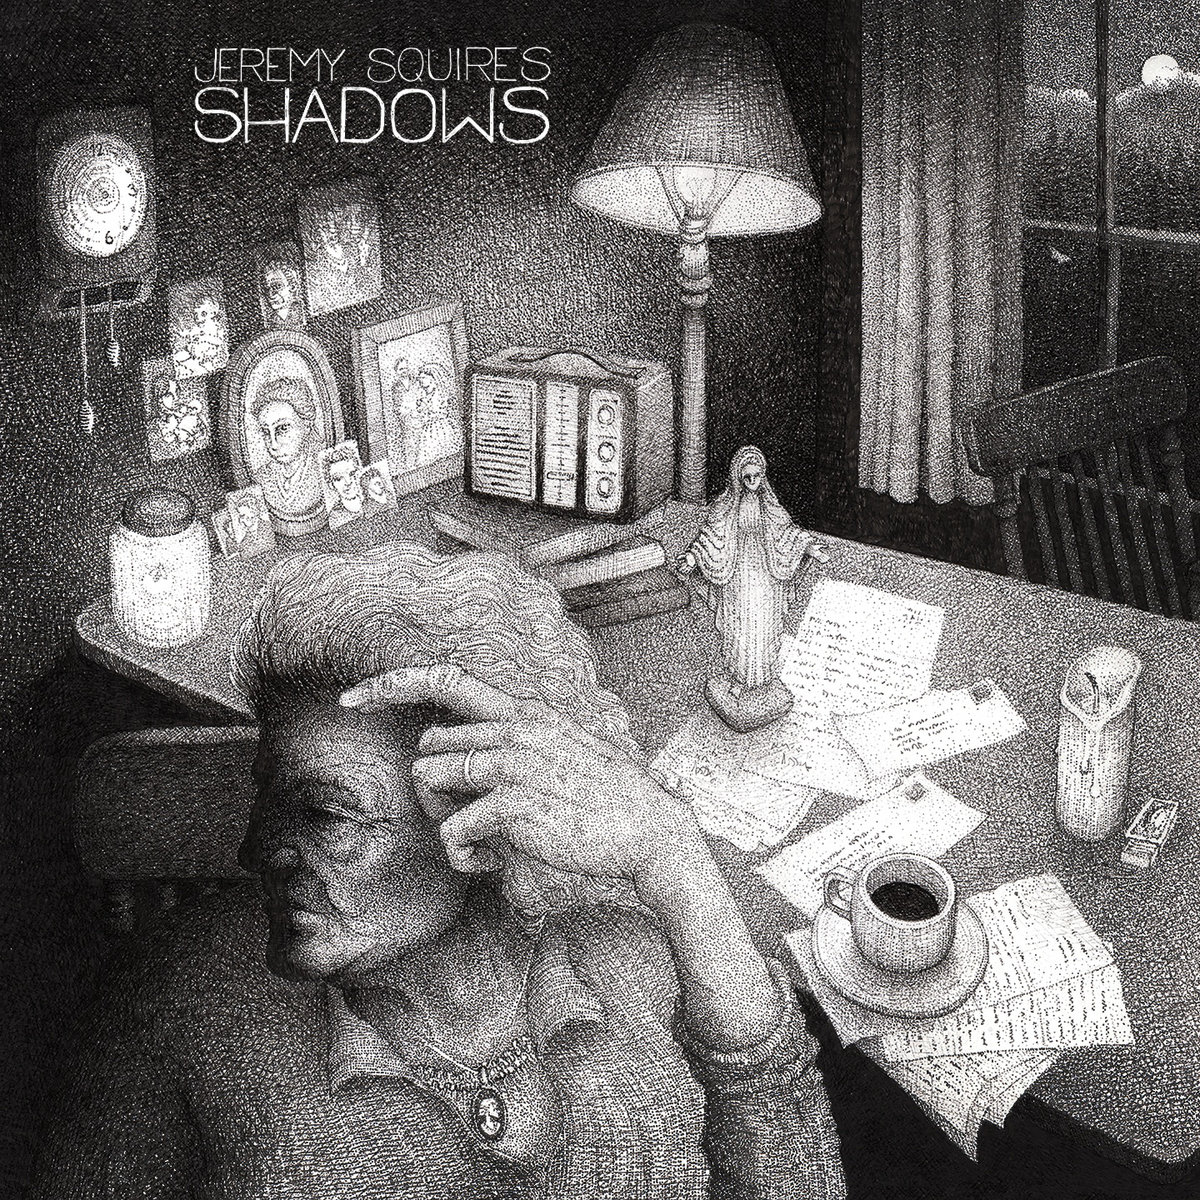 Jeremy Squires Shadows cover art